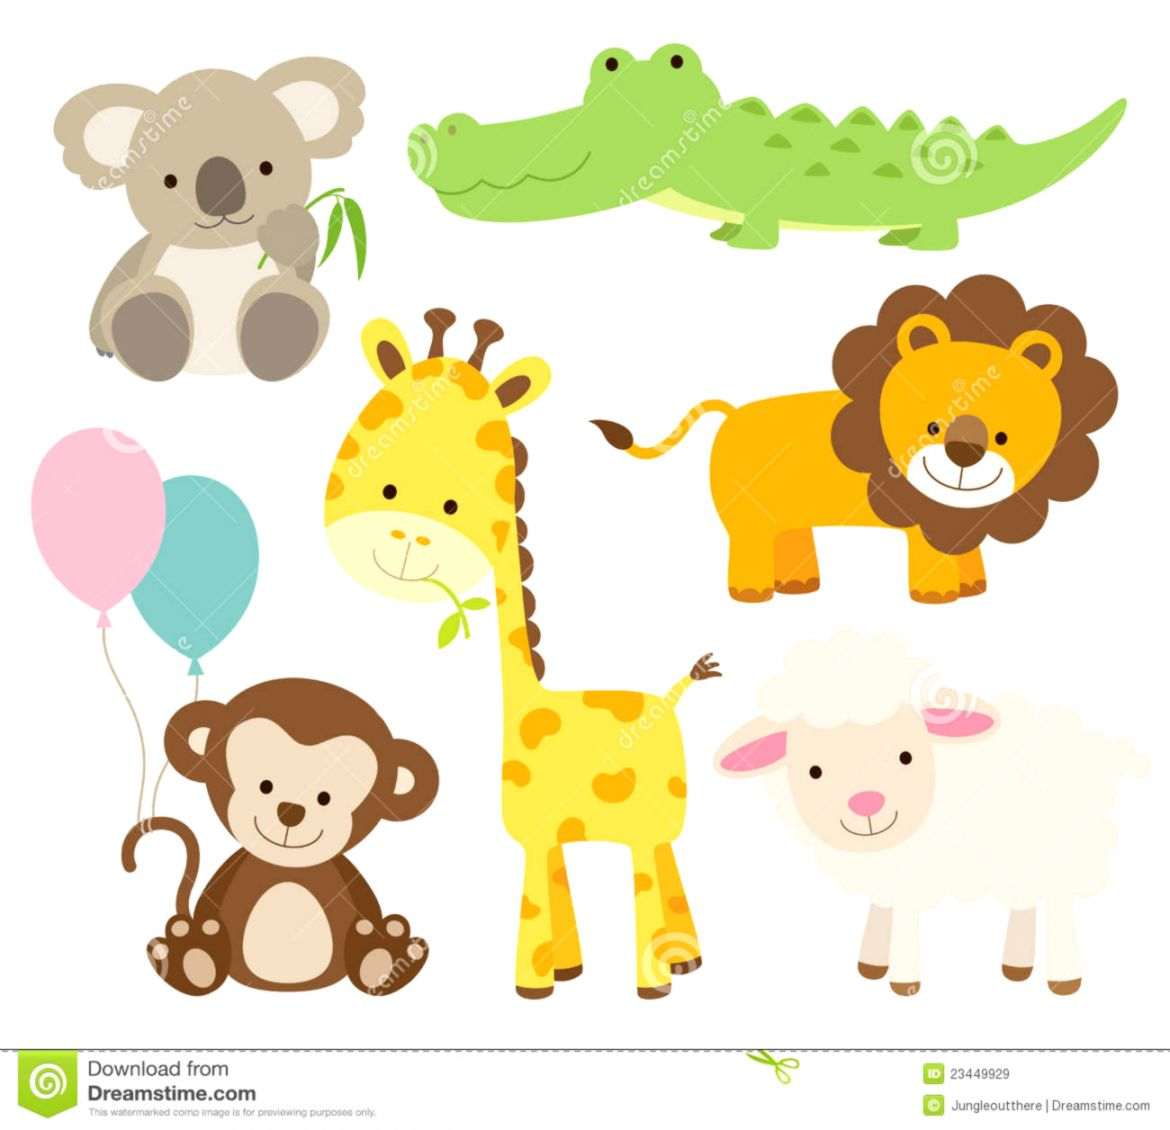 Baby animal clipart.